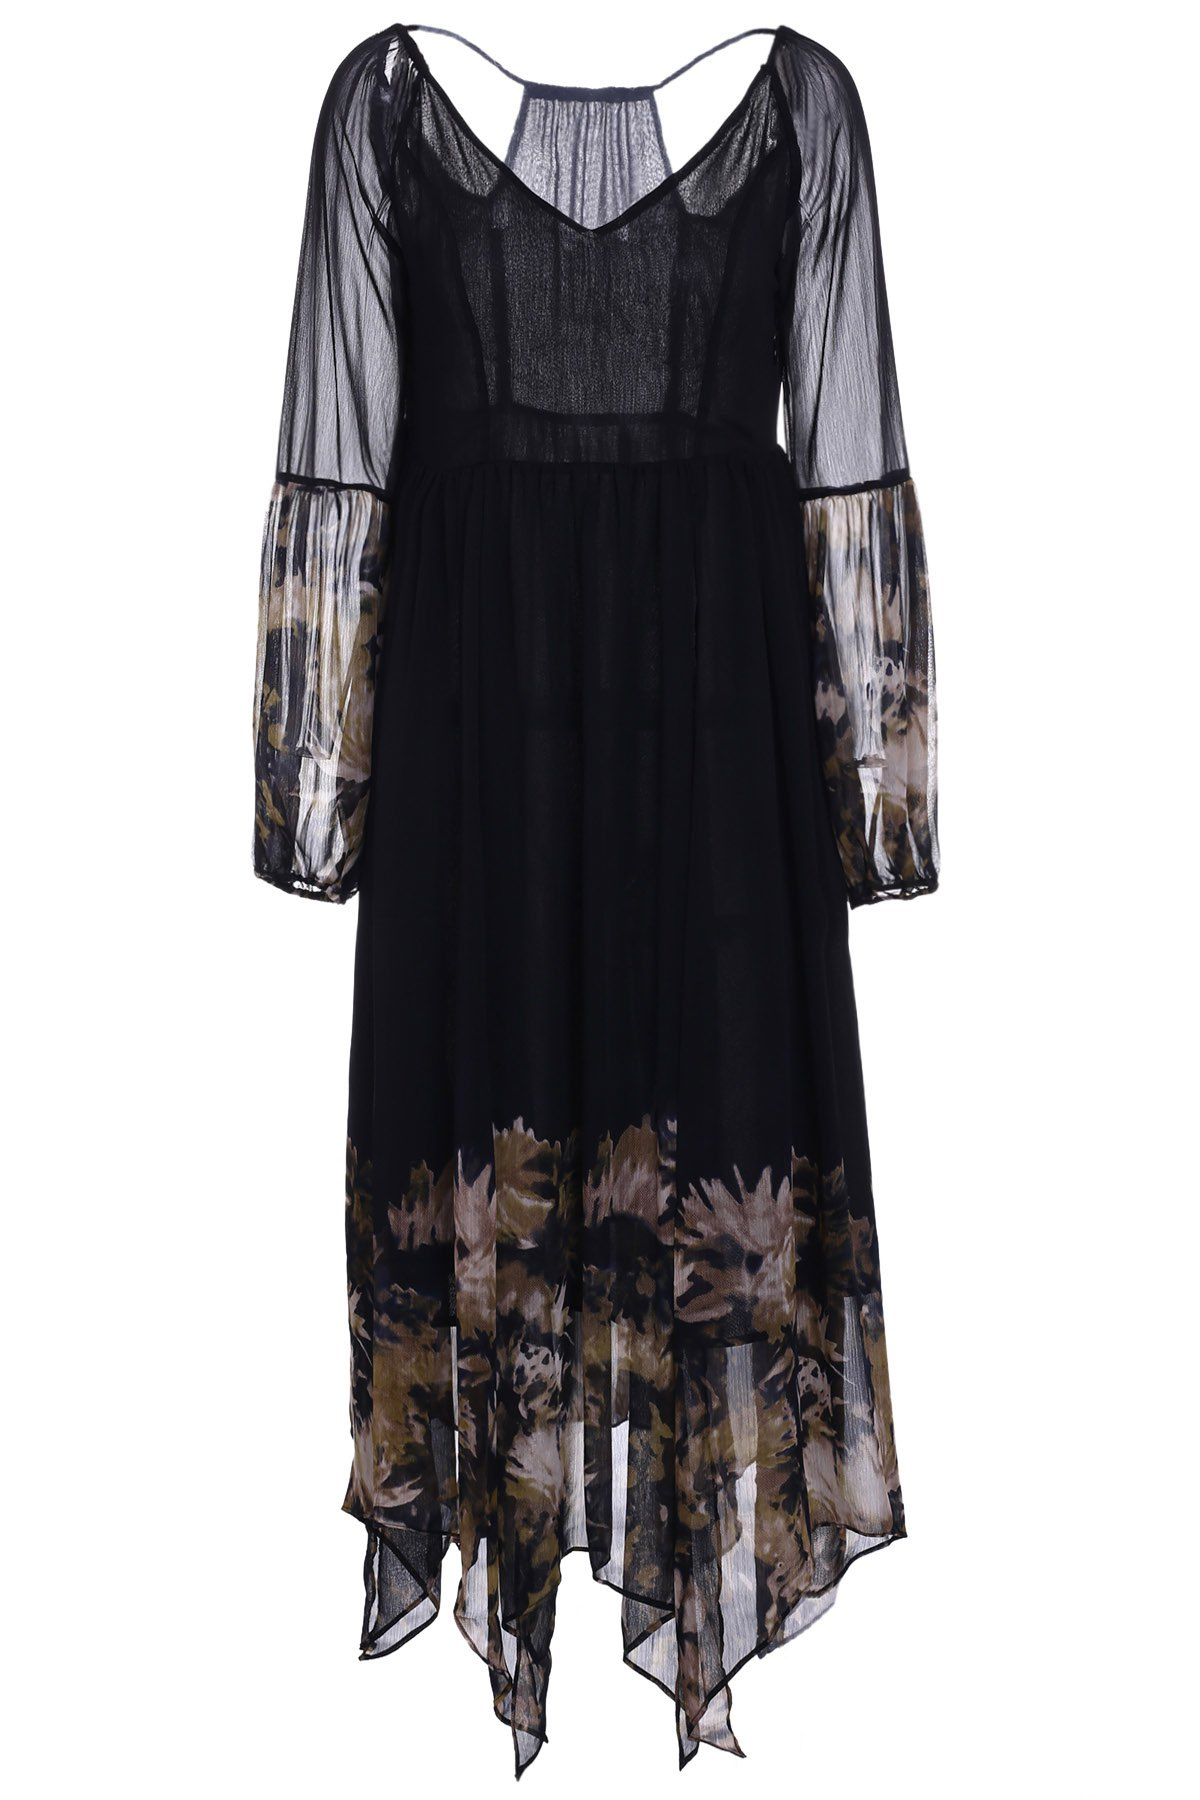 Bohemian plongeant cou à manches longues See-Through Floral Print Dress